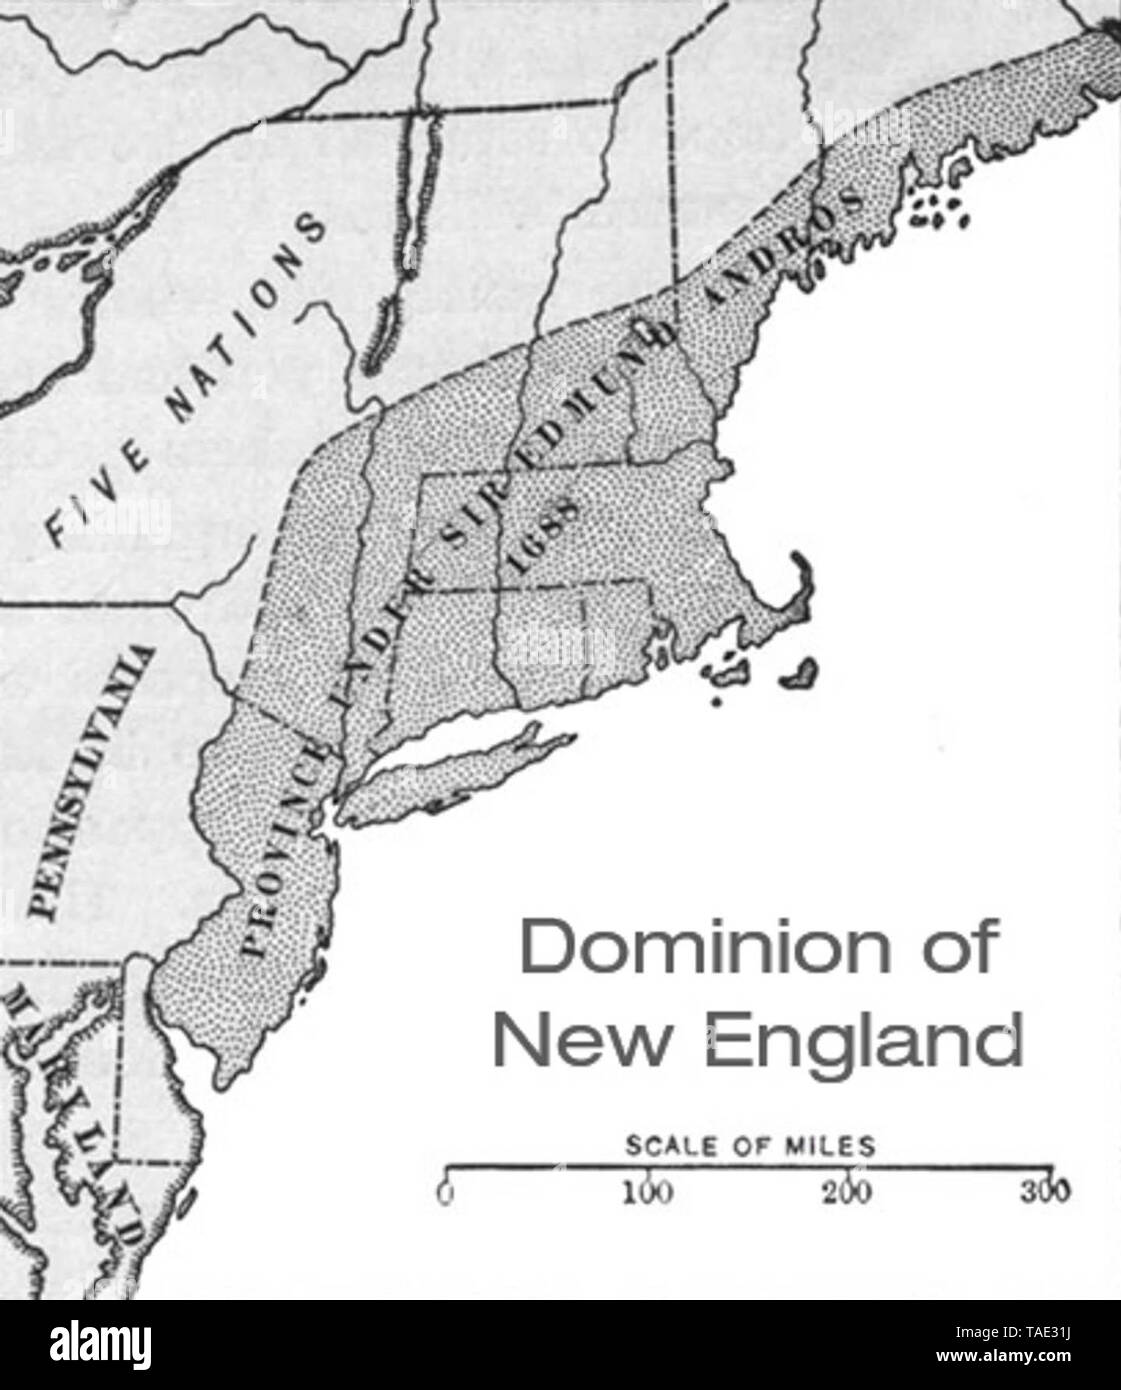 Map of The Dominion of New England, ruled over by Sir Edmund Andros, from 1686-1689, during the rule of James II.   Ended by the Glorious Revolution, when the Puritans revolted, overthrew, and arrested Andros, and then his Lieutenant Governor, Francis Nicholson was overthrown in Leisler's Rebellion.  This map is of the territory in 1688, and is from a book called Historical Collections, published in 1922 - Stock Image